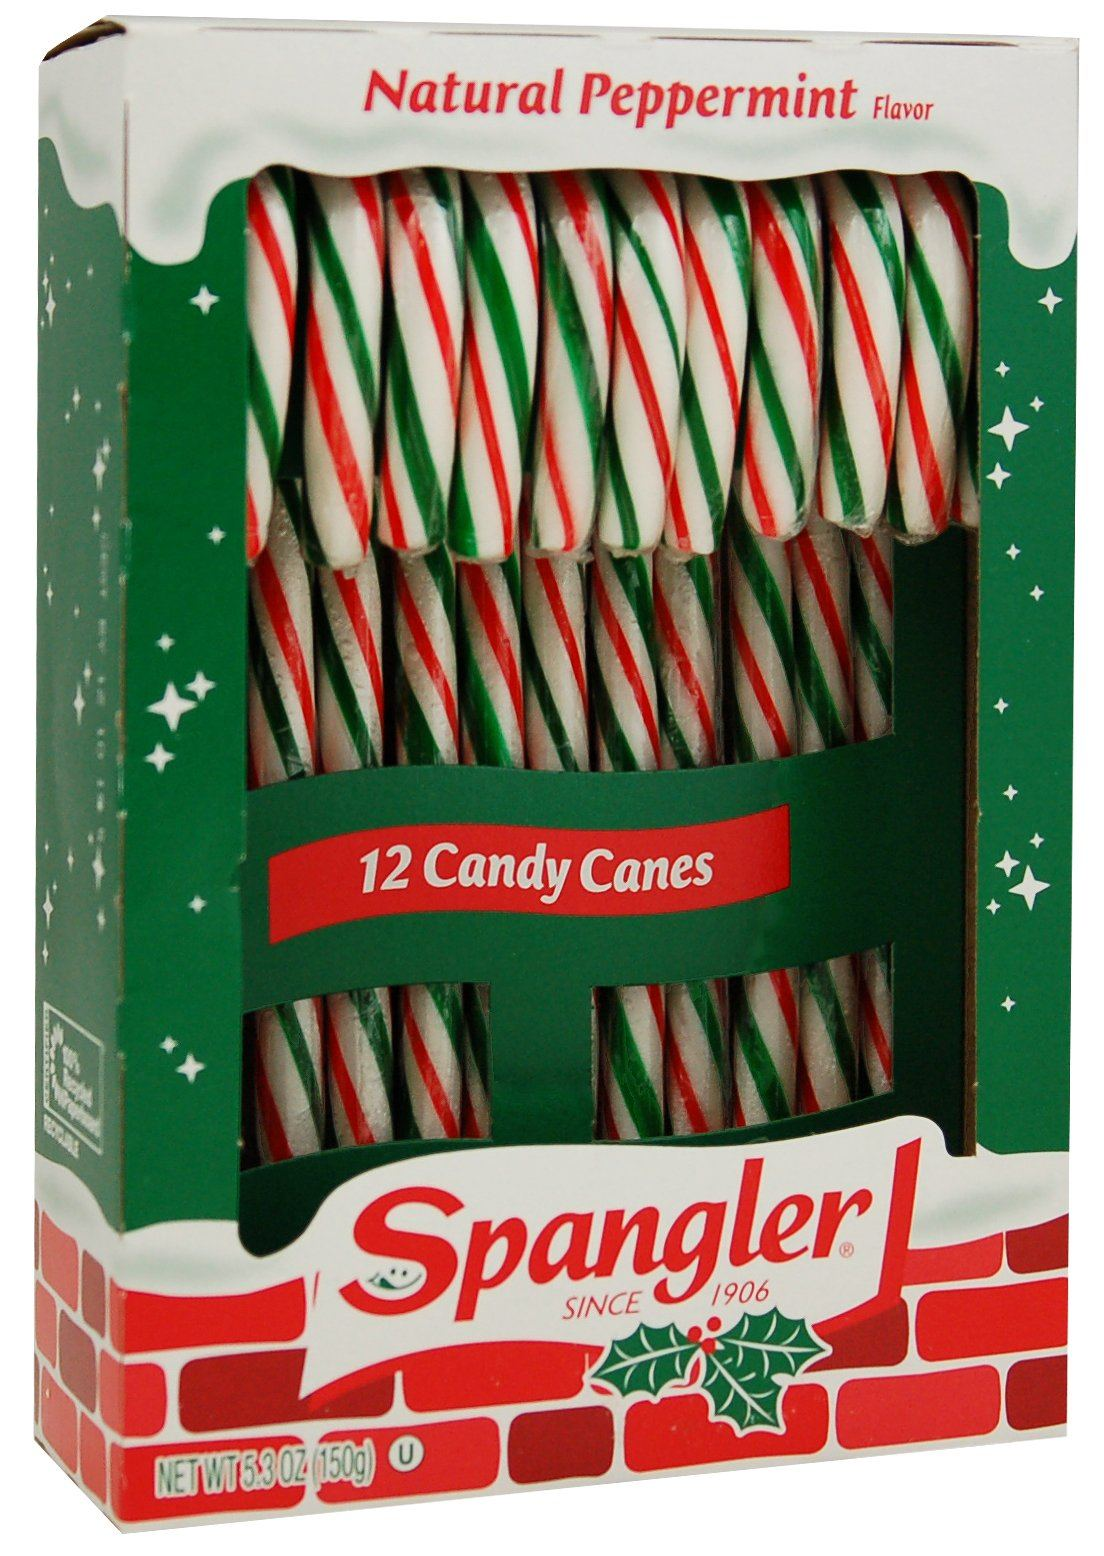 Spangler Candy Canes Spangler Red, Green & White 12 Ct-5.3 Ounce